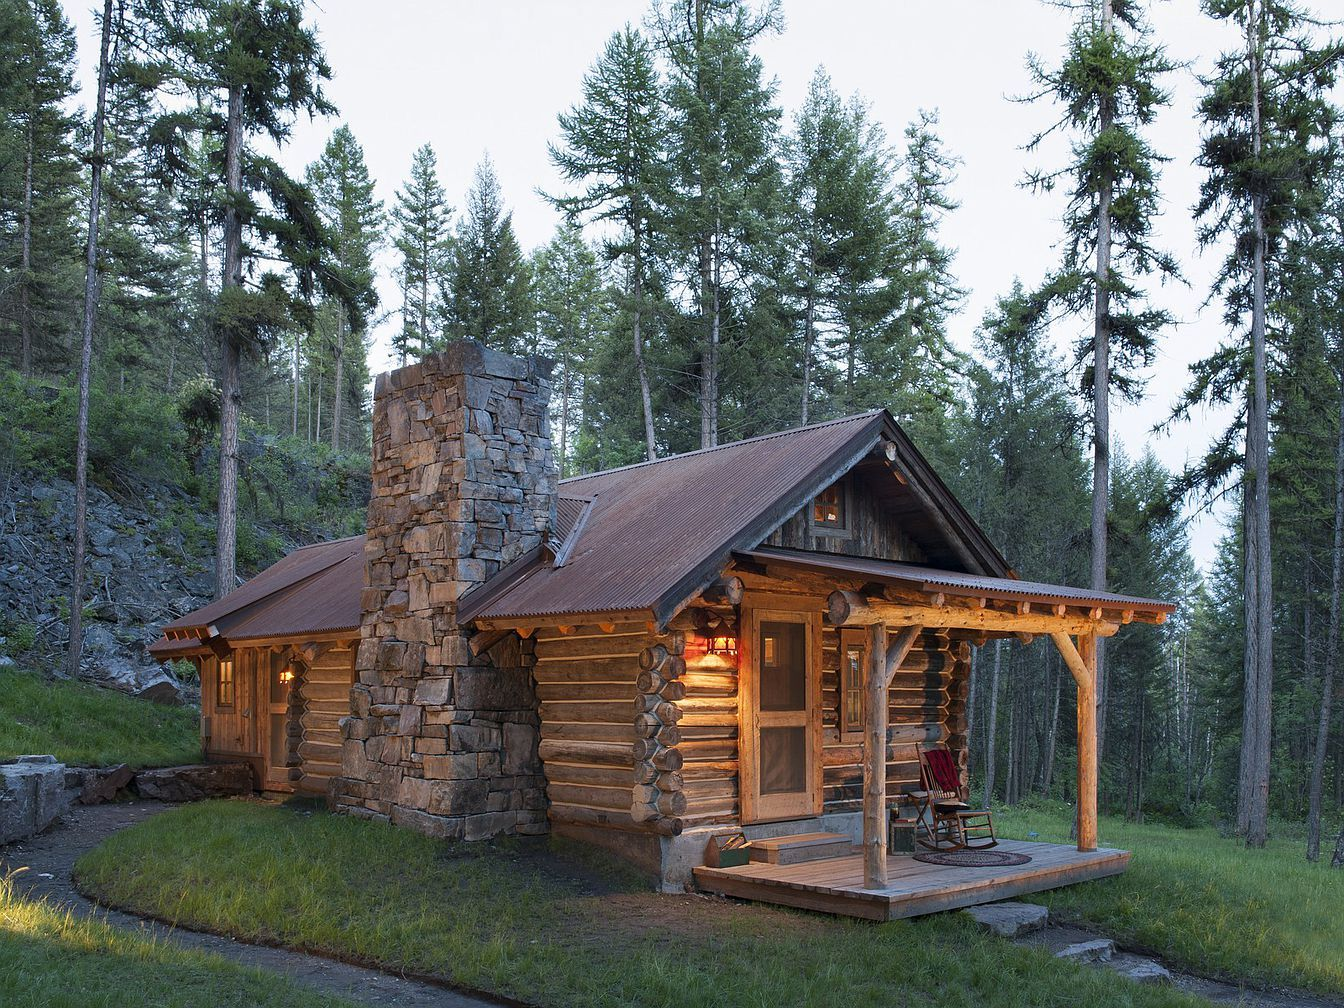 59 Eagle Creek Trl Whitefish Mt 59937 Mls 21812661 Zillow Tiny Log Cabins Log Cabin Rustic Ranch House